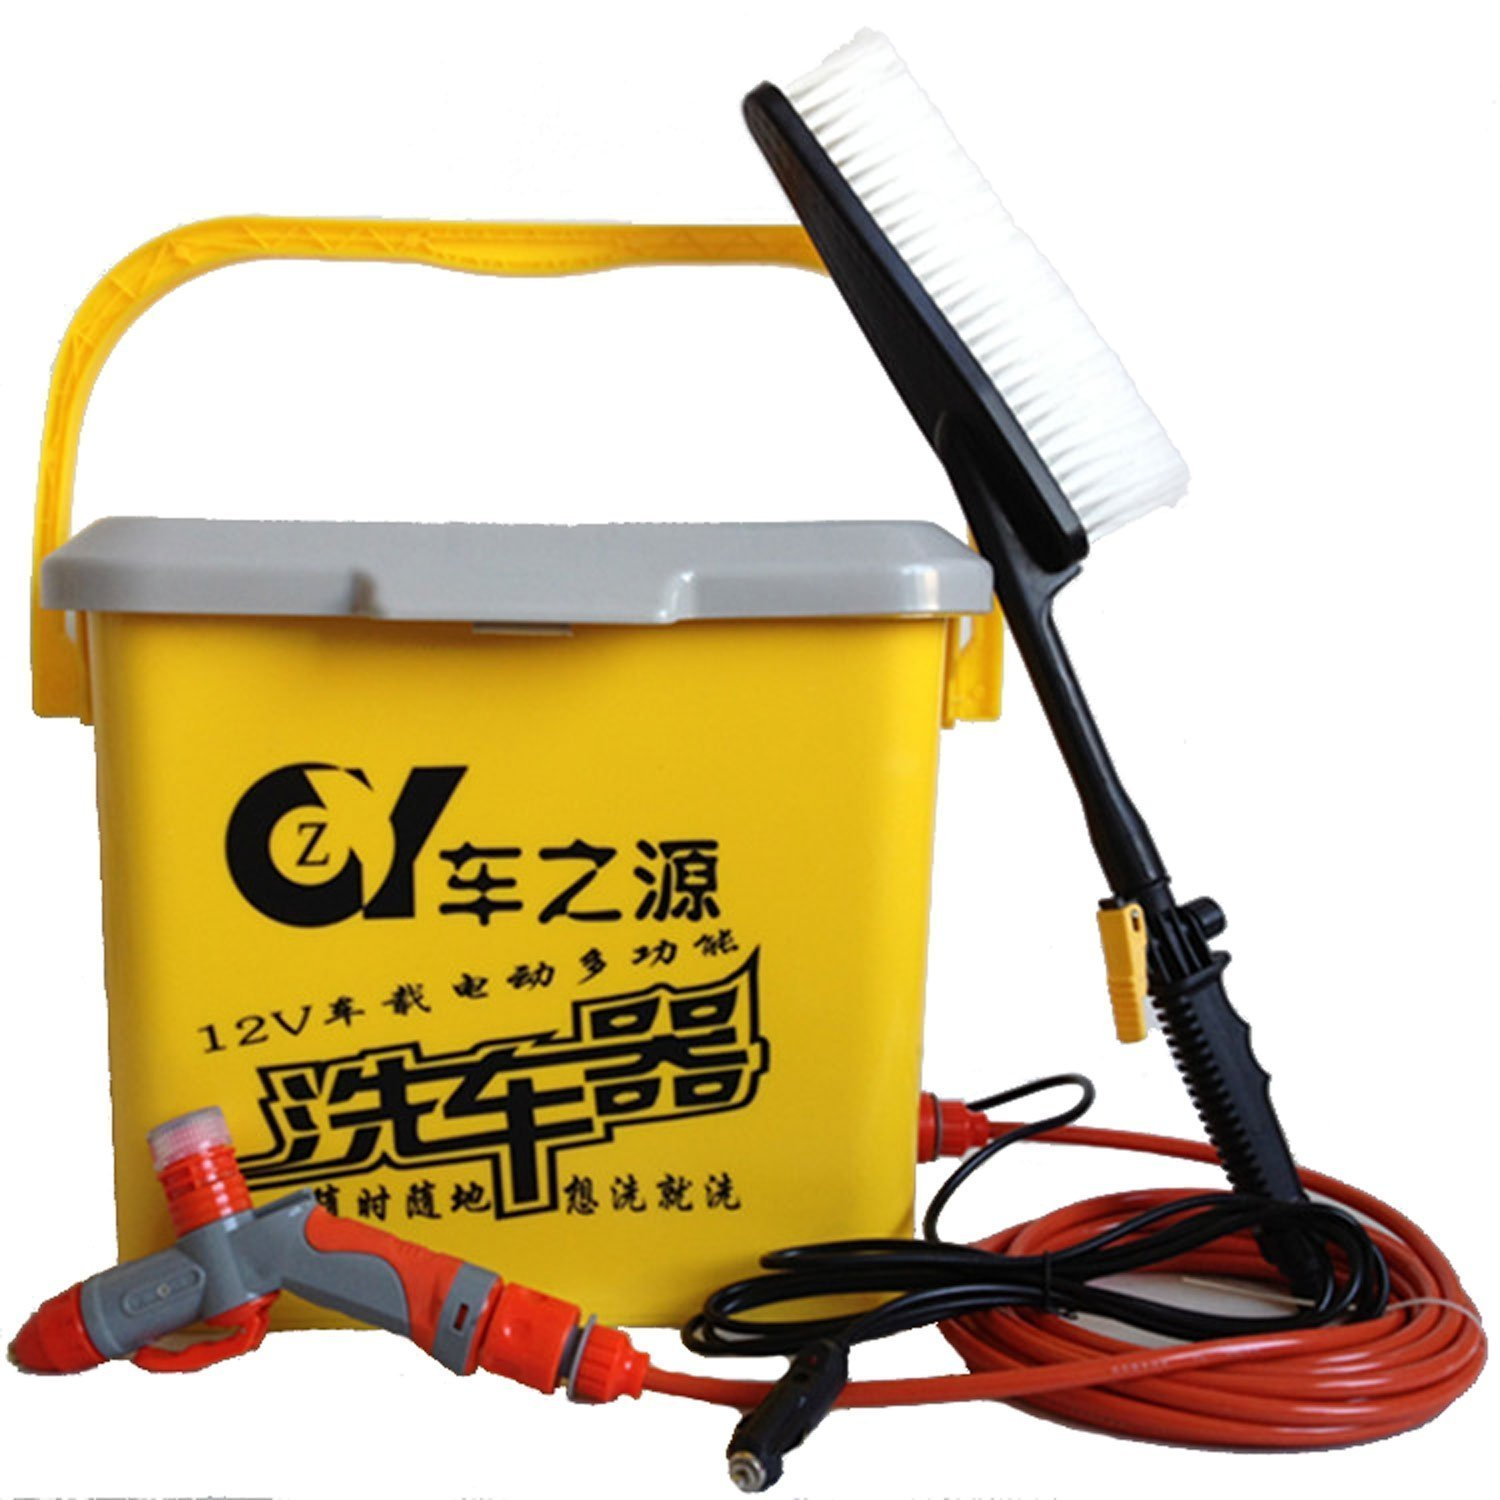 May rua xe The car is the source of high pressure spray foam gun protection paint wash machine porta